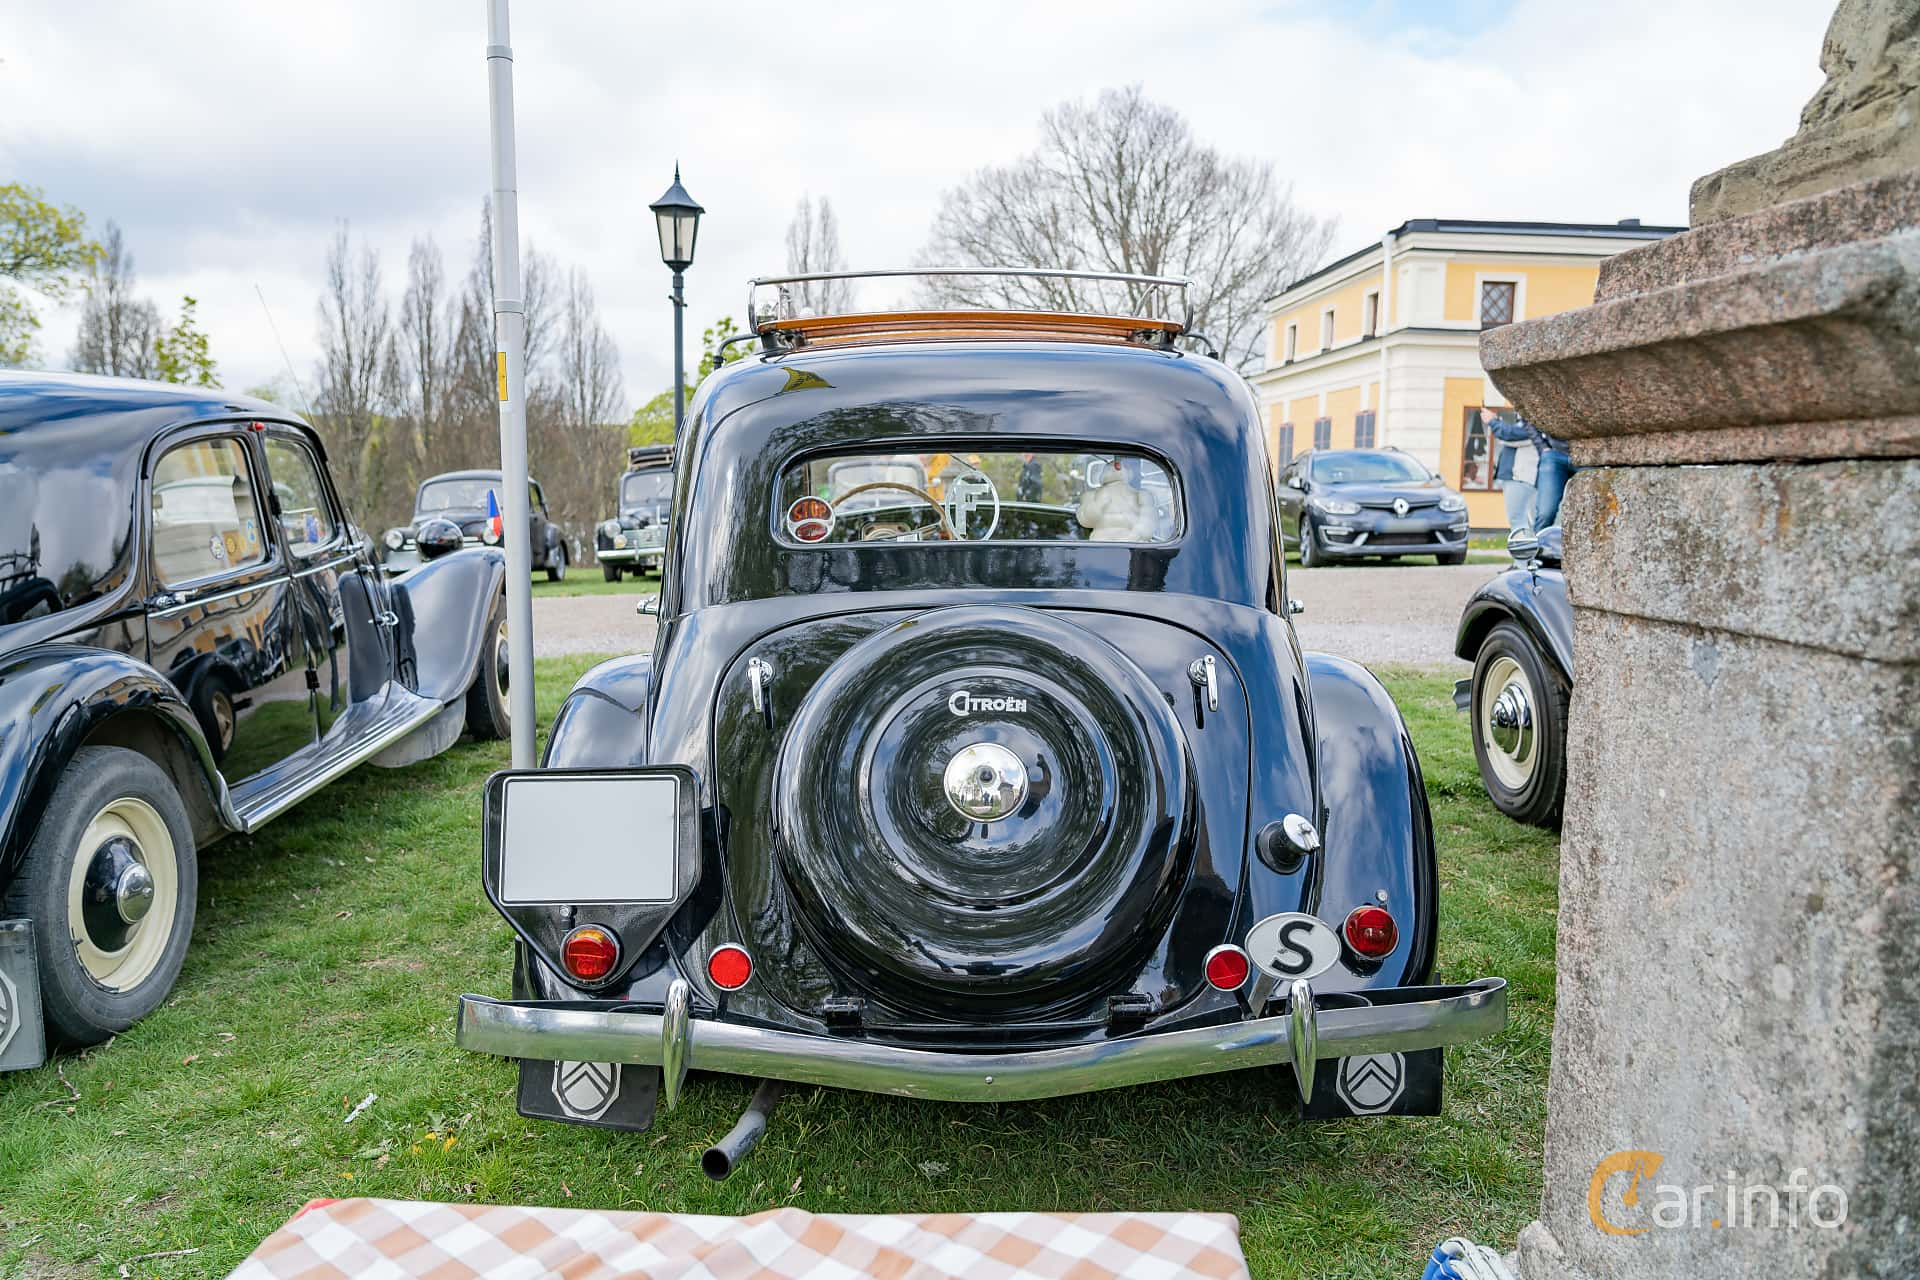 Citroën 11 CV Sedan 1.9 Manual, 56hp, 1951 at Fest För Franska Fordon  på Taxinge slott 2019